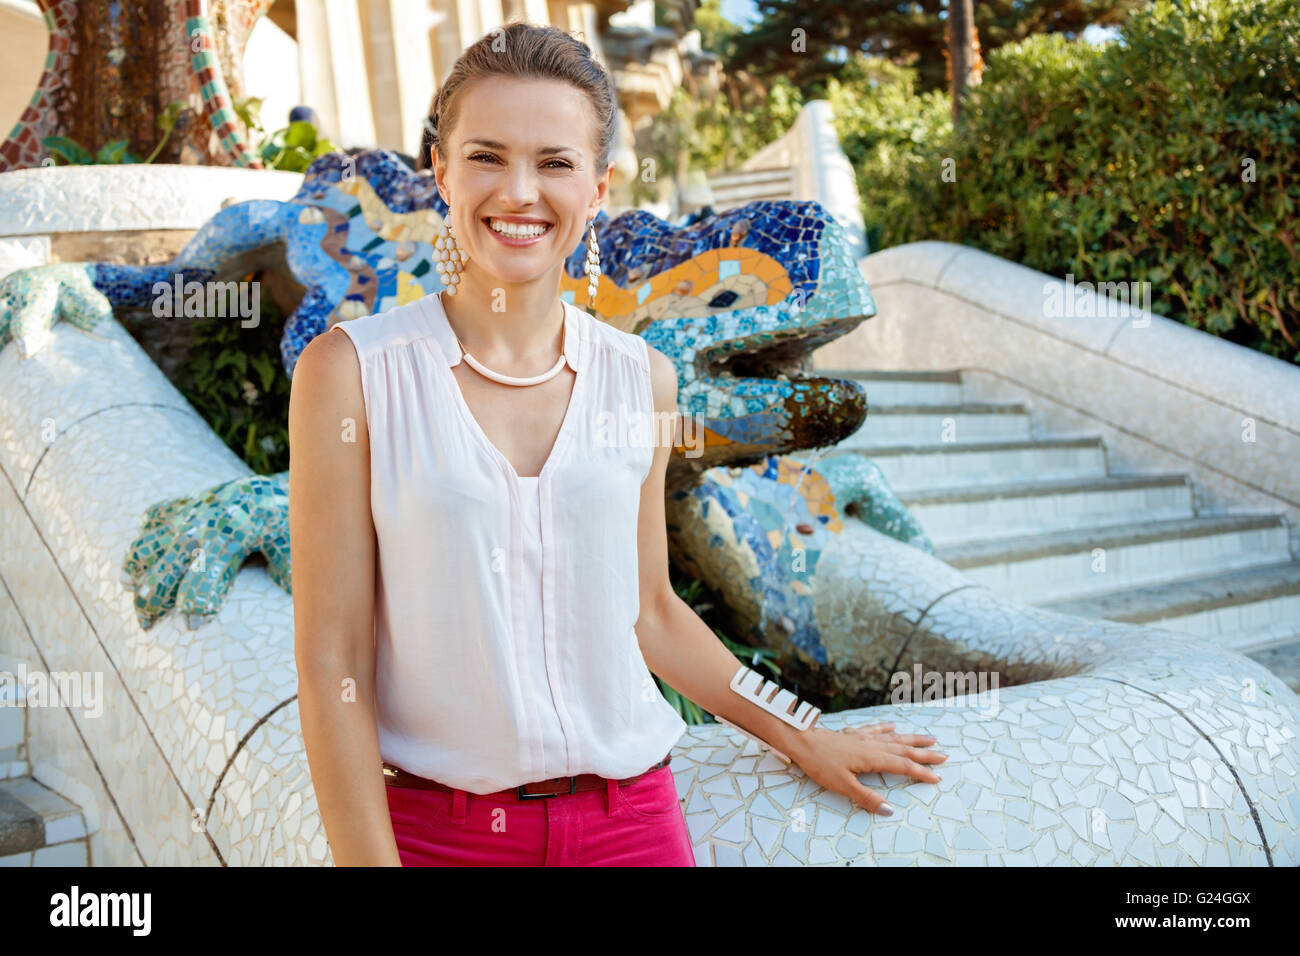 Get inspired by Park Guell in your next trip to Barcelona, Spain. Portrait of happy young woman near multicolored Stock Photo